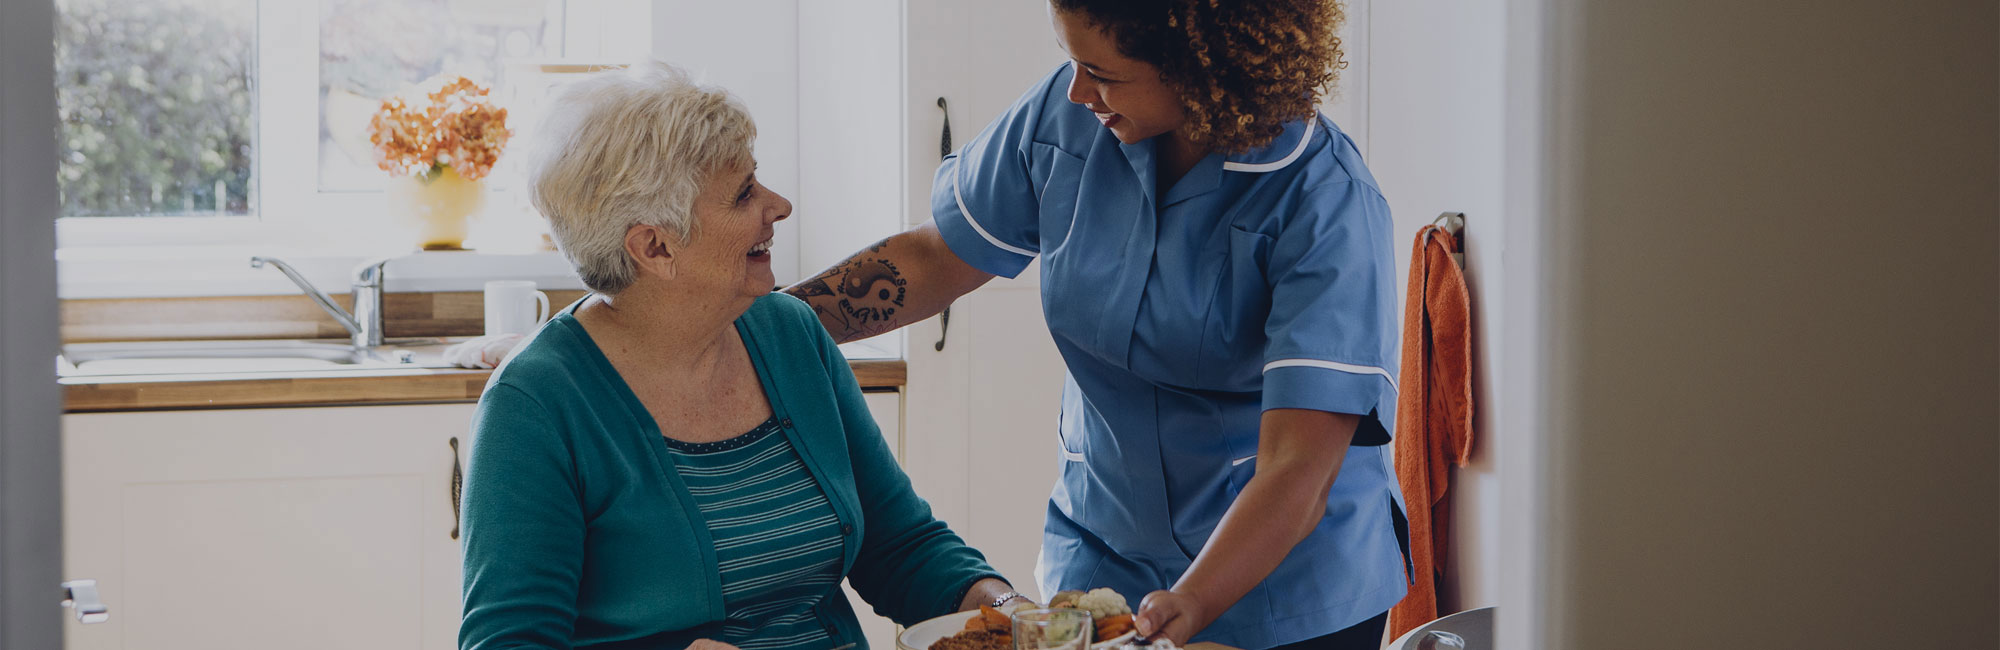 Care home worker with female resident